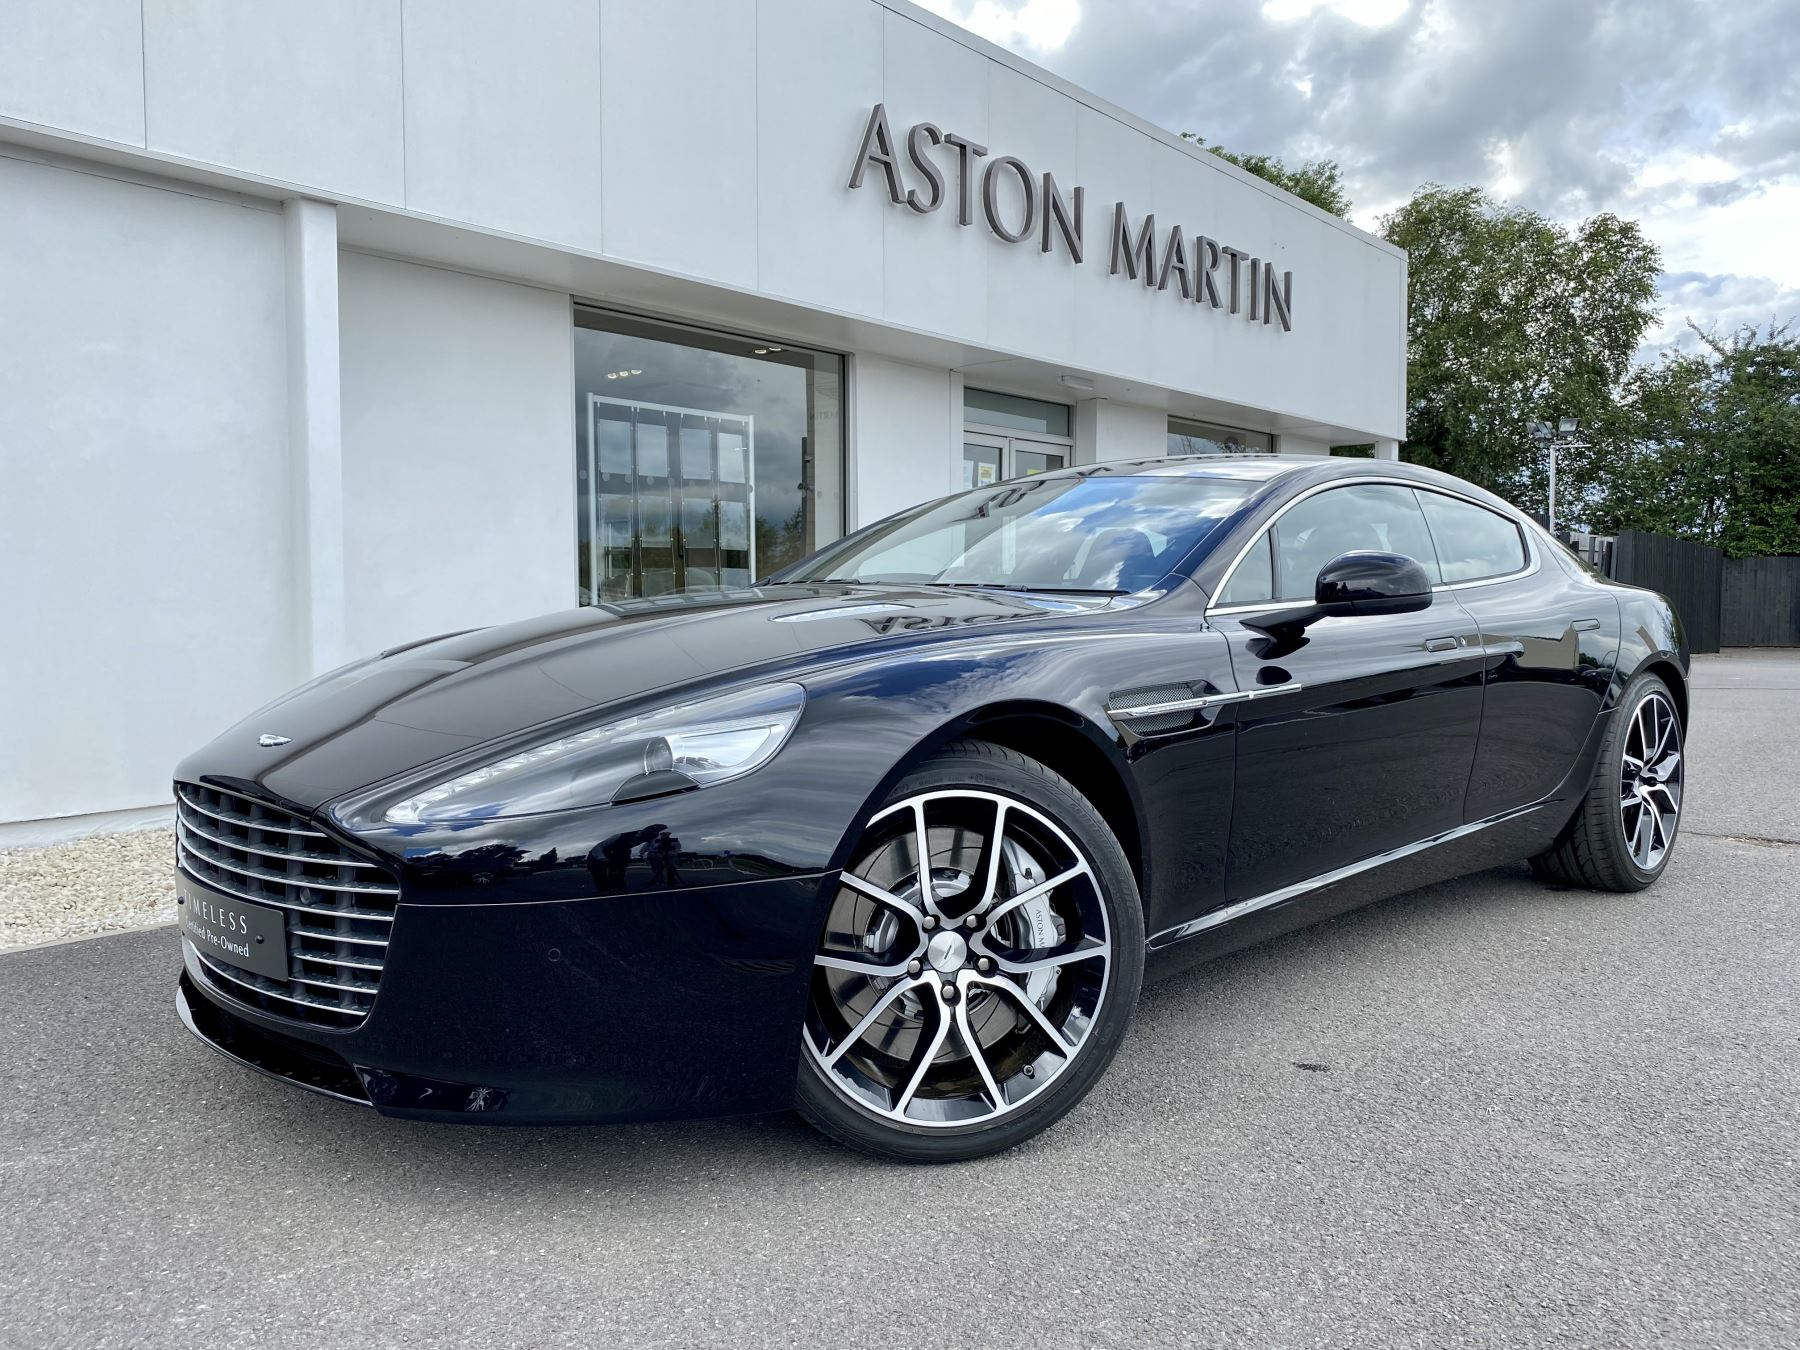 Aston Martin Rapide S V12 [552] 4dr Touchtronic III 8 Spd, Onyx Black And Obsidian Black Leather, Rear Seat Entertainment. image 3